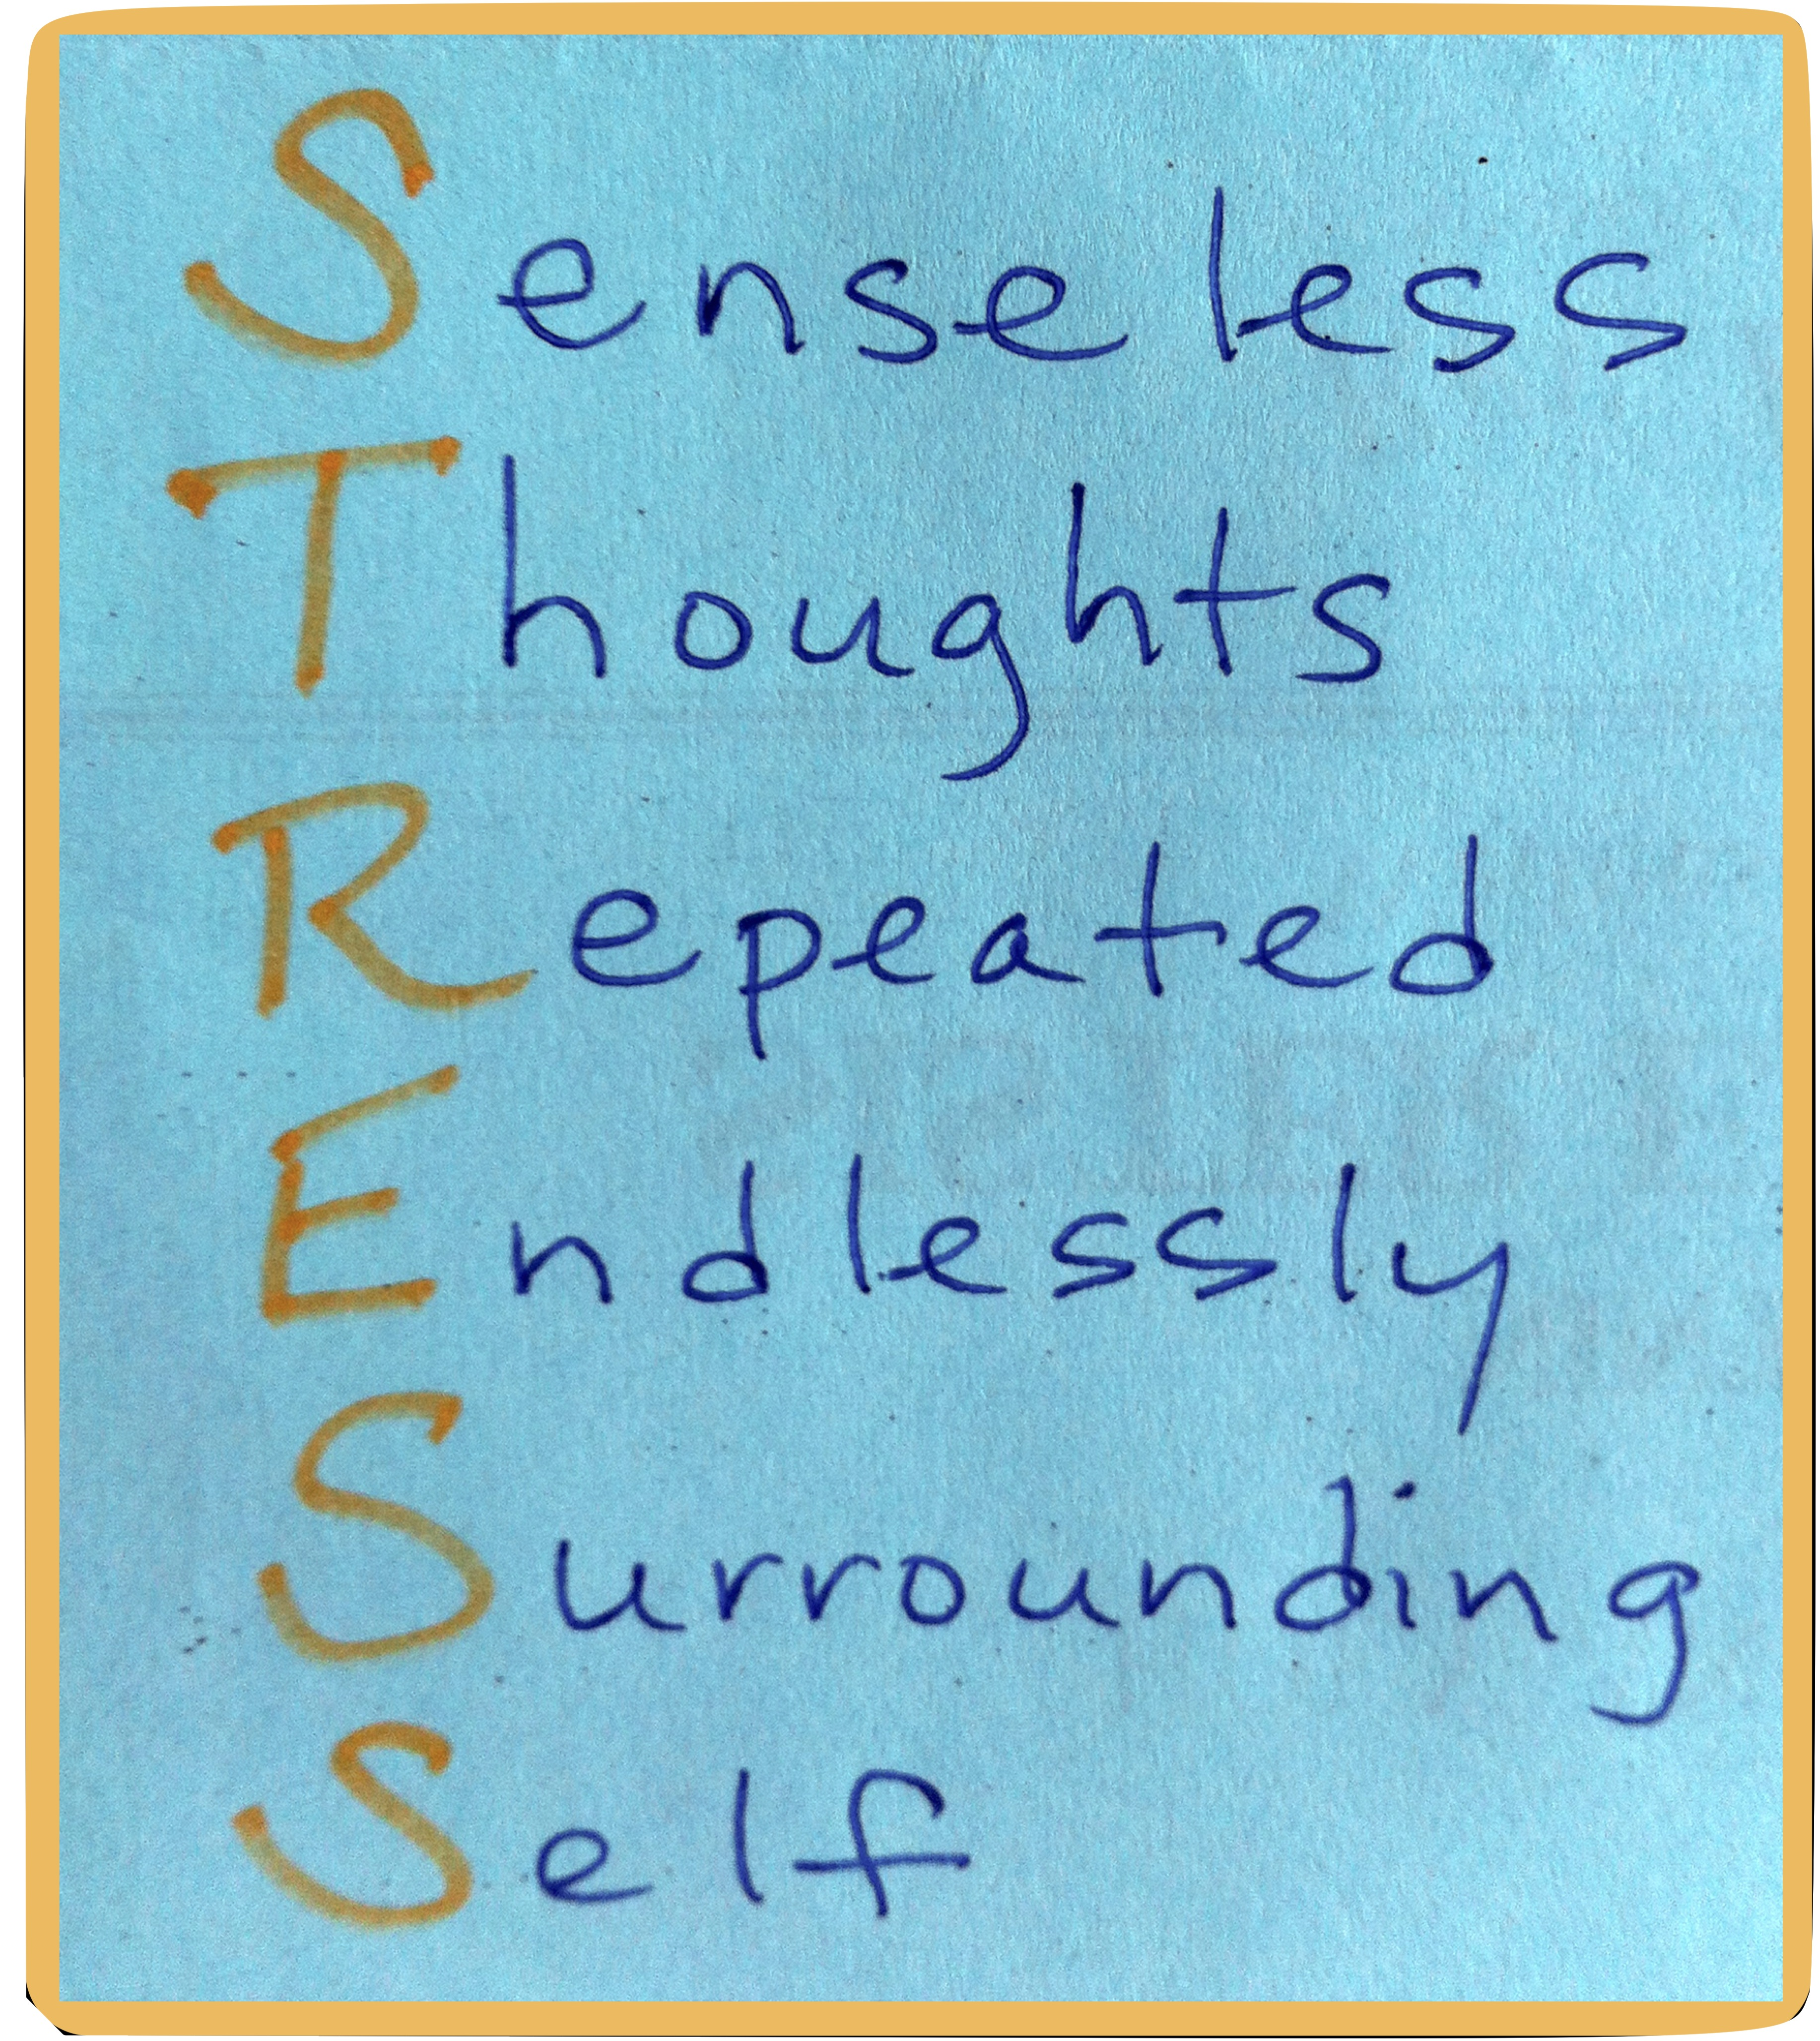 stress – senseless thoughts repeated endlessly surrounding self